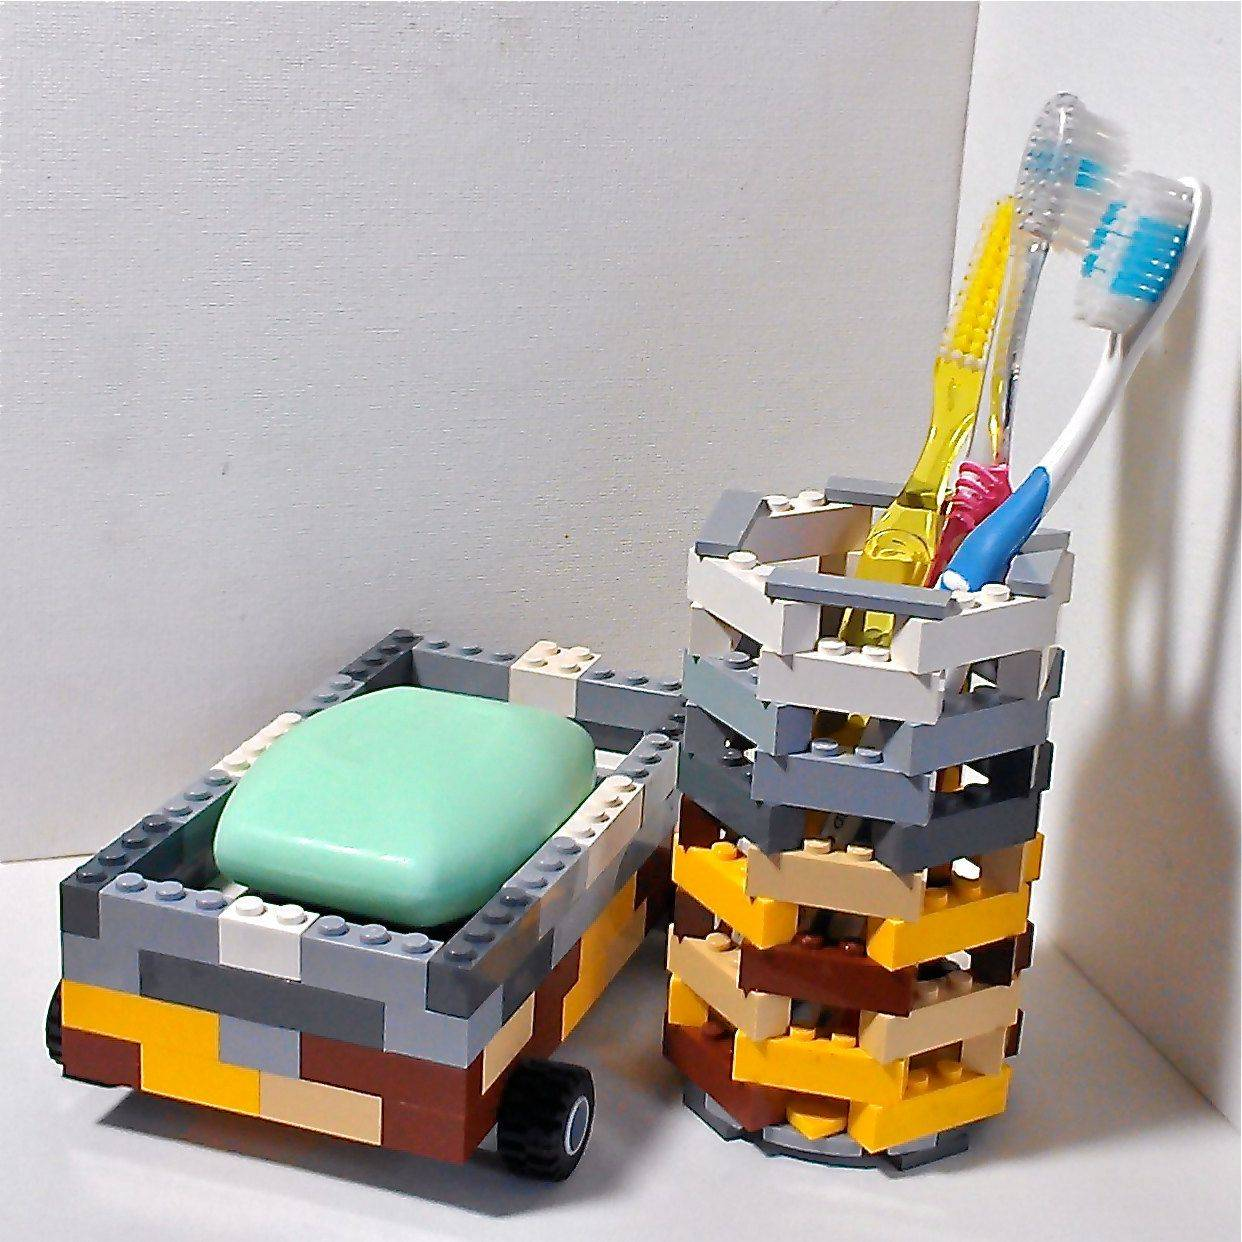 LEGO Toothbrush and Soap